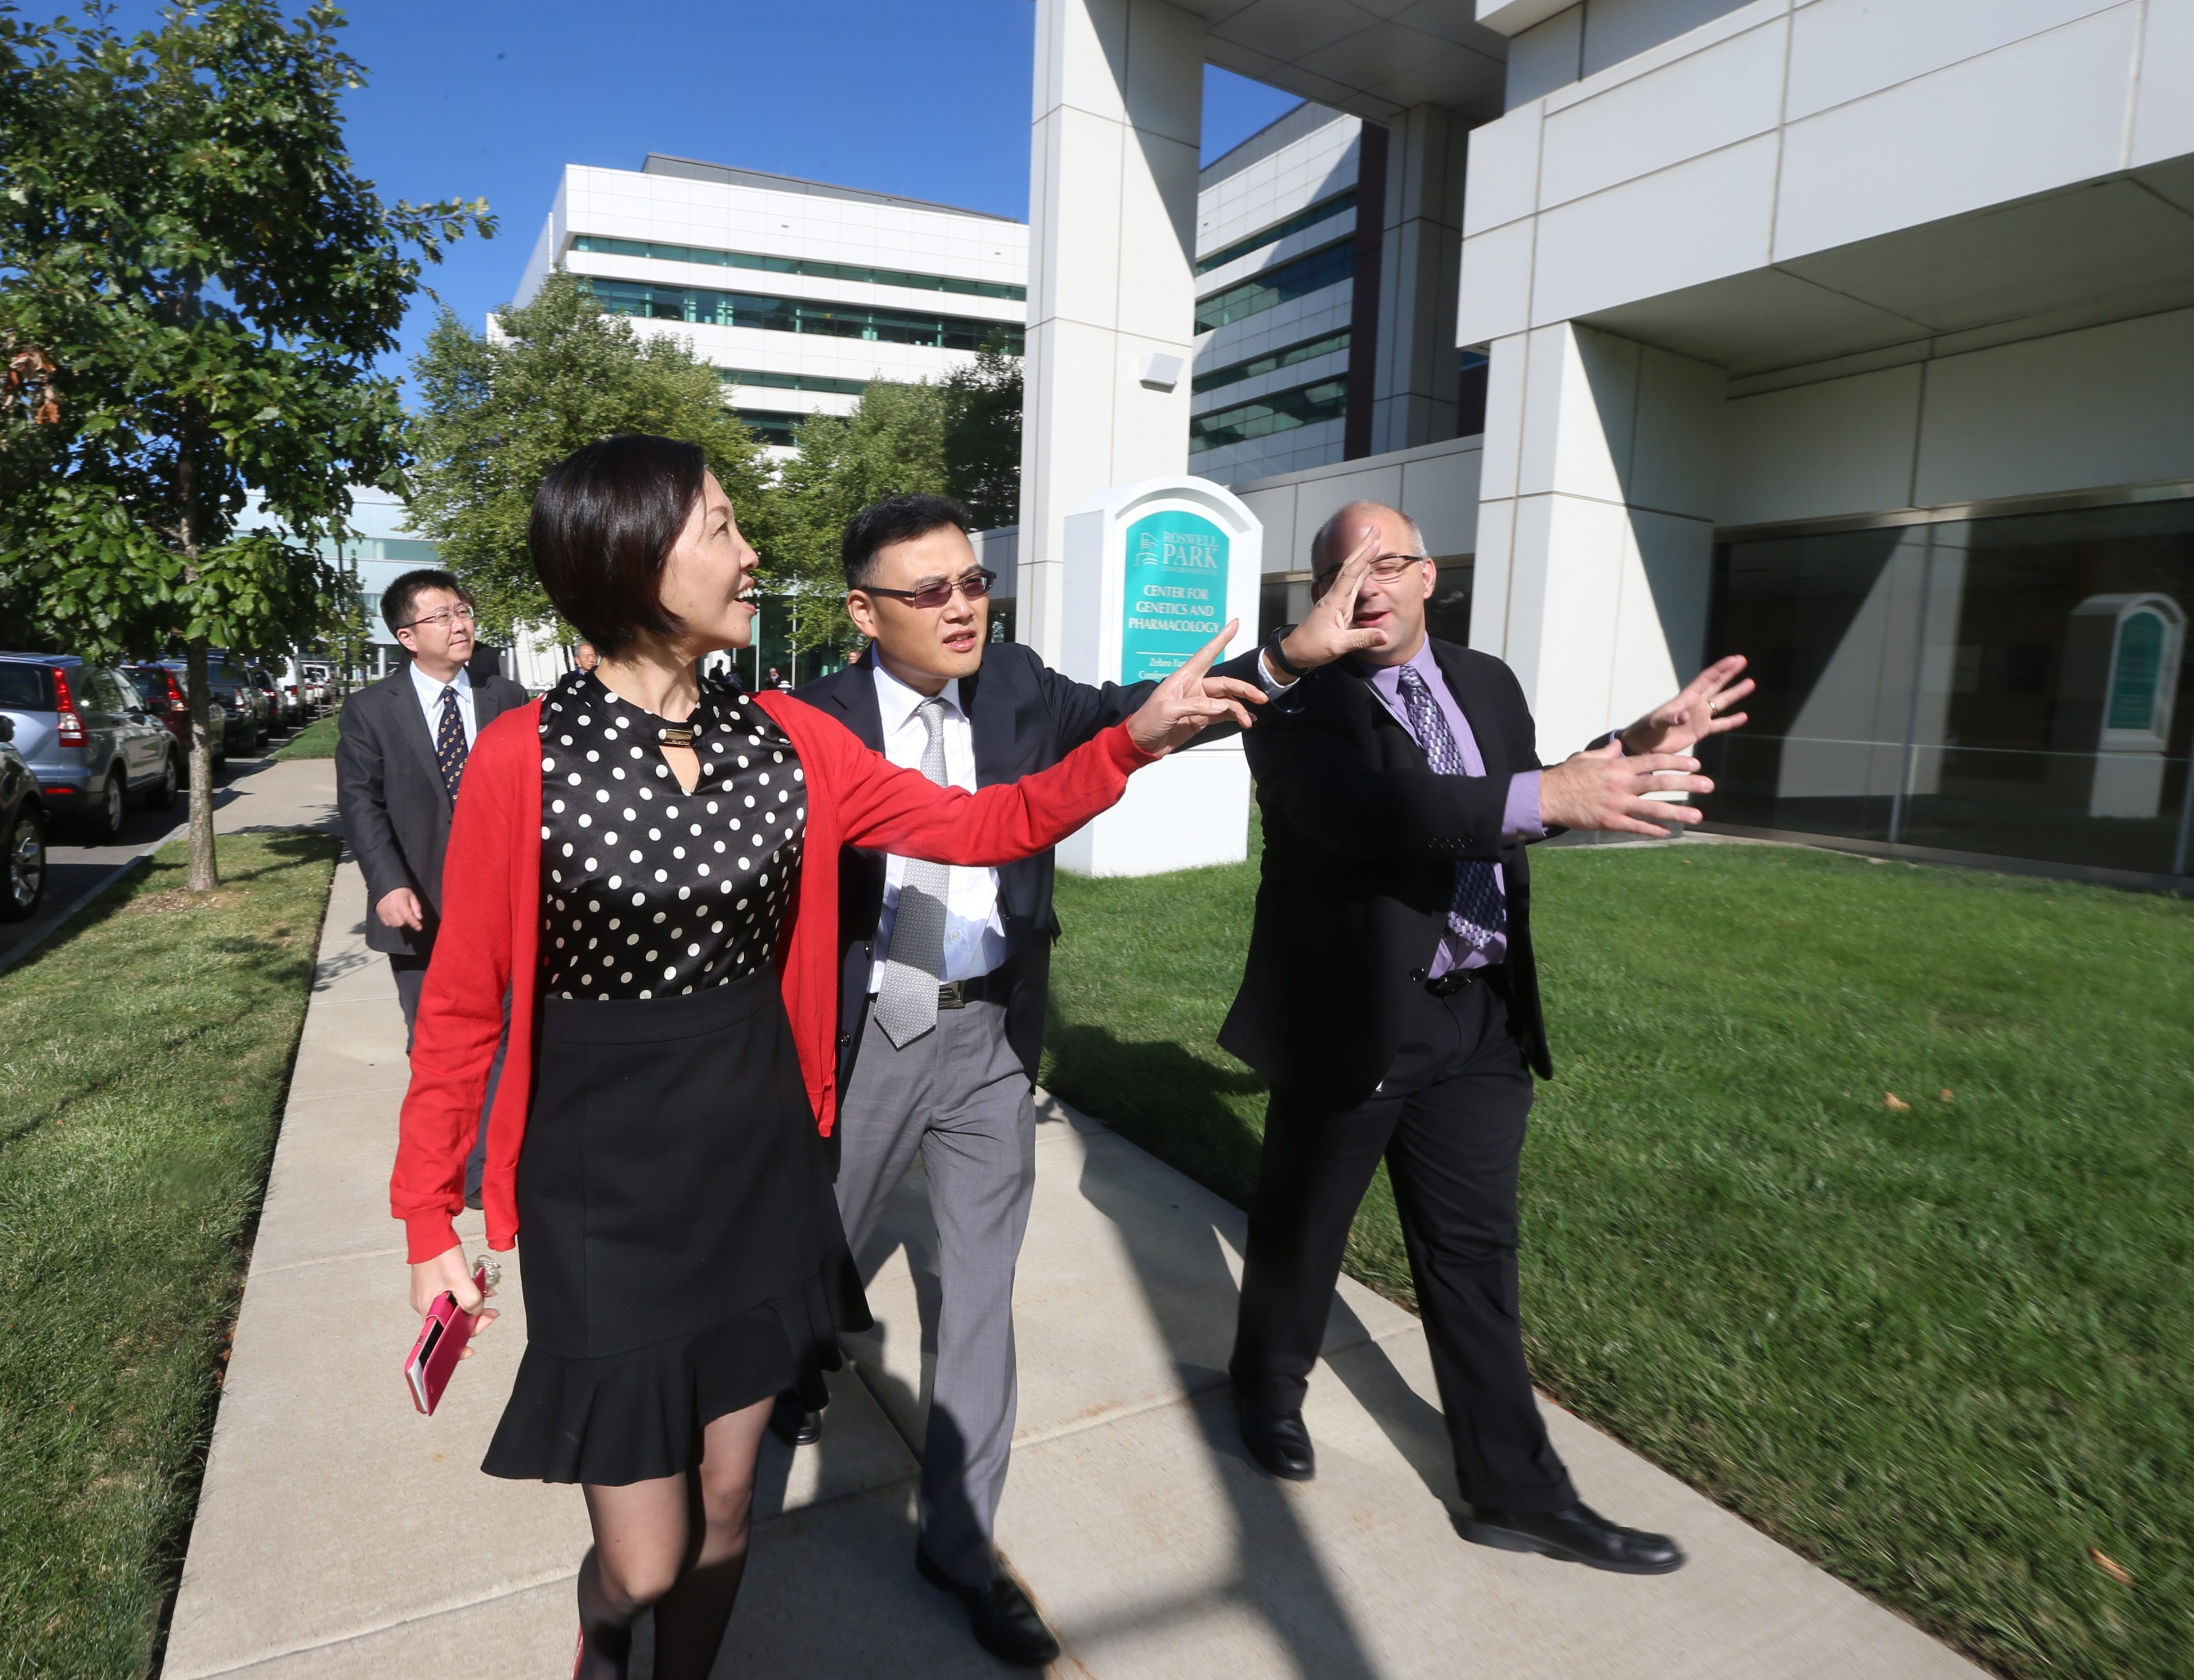 Yang Liqiong, foreground, deputy director general of Chongqing's Economic Development and Information Commission, tours Roswell Park's Center for Genetics and Pharmacology with officials including William Zuo, center, of Polymed, and Gerald Fetterly, of Athenex.